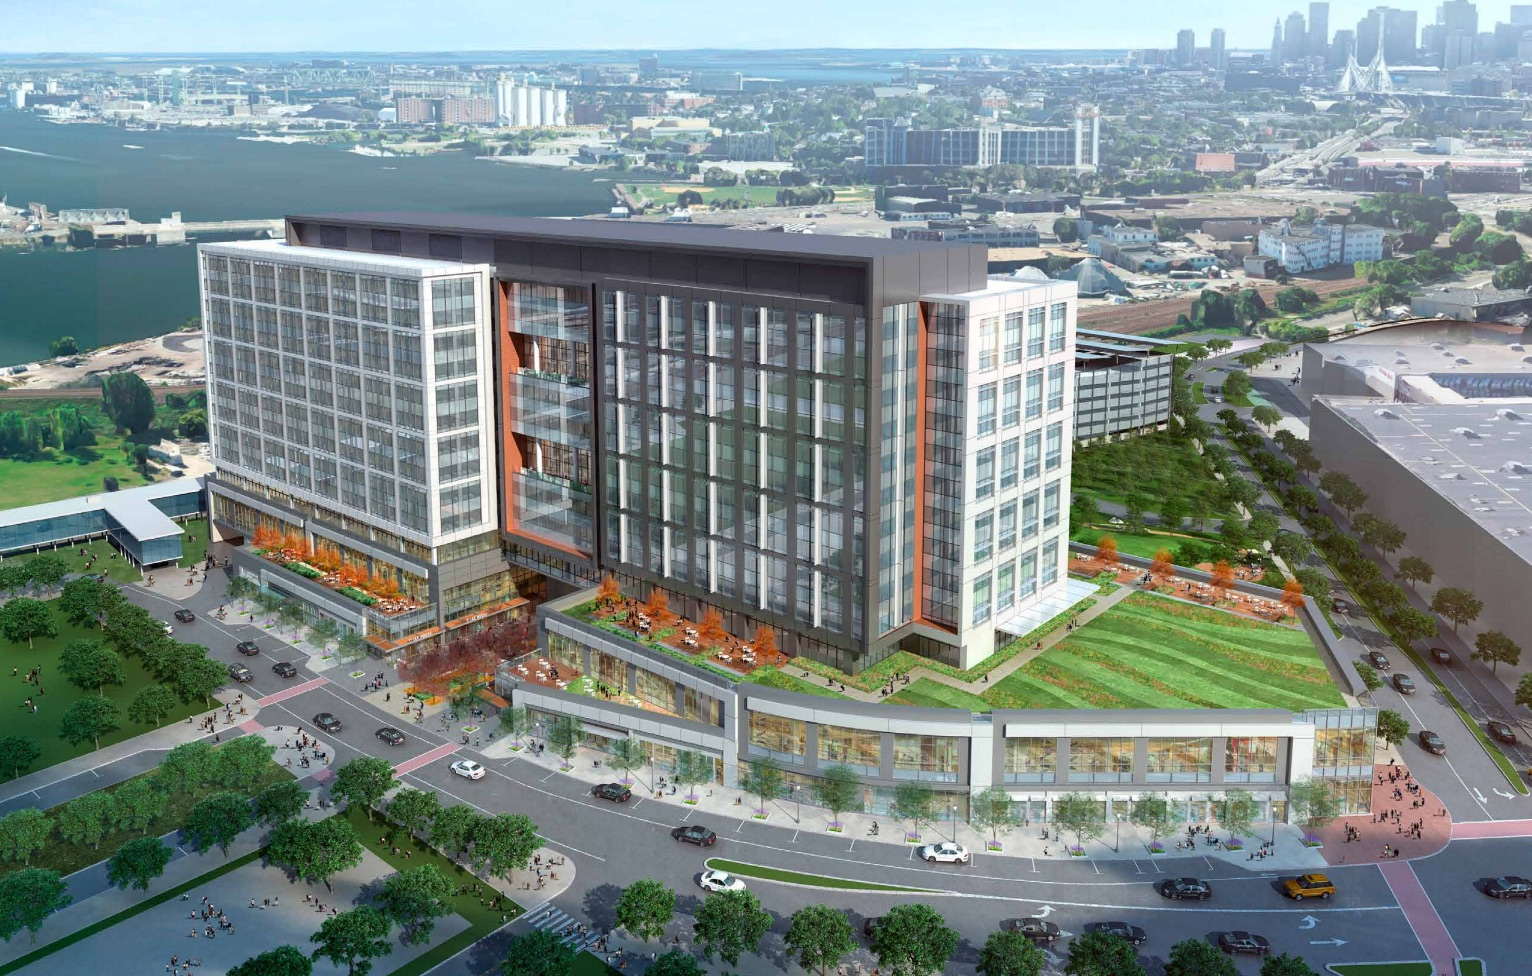 Partners healthcare headquarters assembly row 399 revolution drive somerville federal realty investment trust gensler